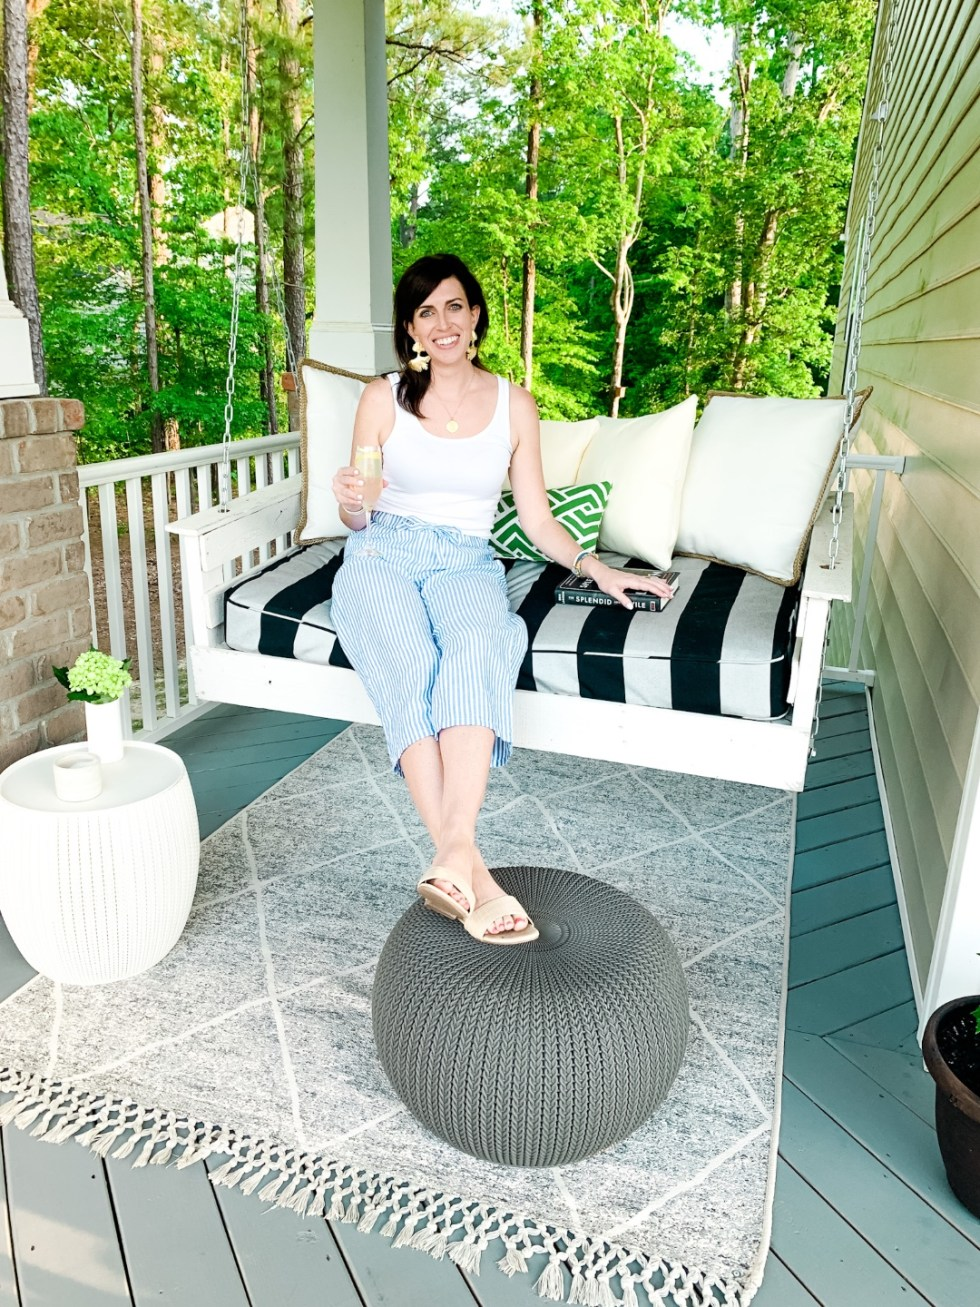 Happy Hour Cocktails by popular North Carolina lifestyle blog, I'm Fixin' To: image of a woman sitting on her front porch swing while holding a gin cocktail and wearing a Women's Slim Fit Any Day Tank Top, Cropped linen beach pant, Amazon Harper Shoes Women's Slip on Flat Slide Band Sandal, and Hunter Blake The WAVE earrings.